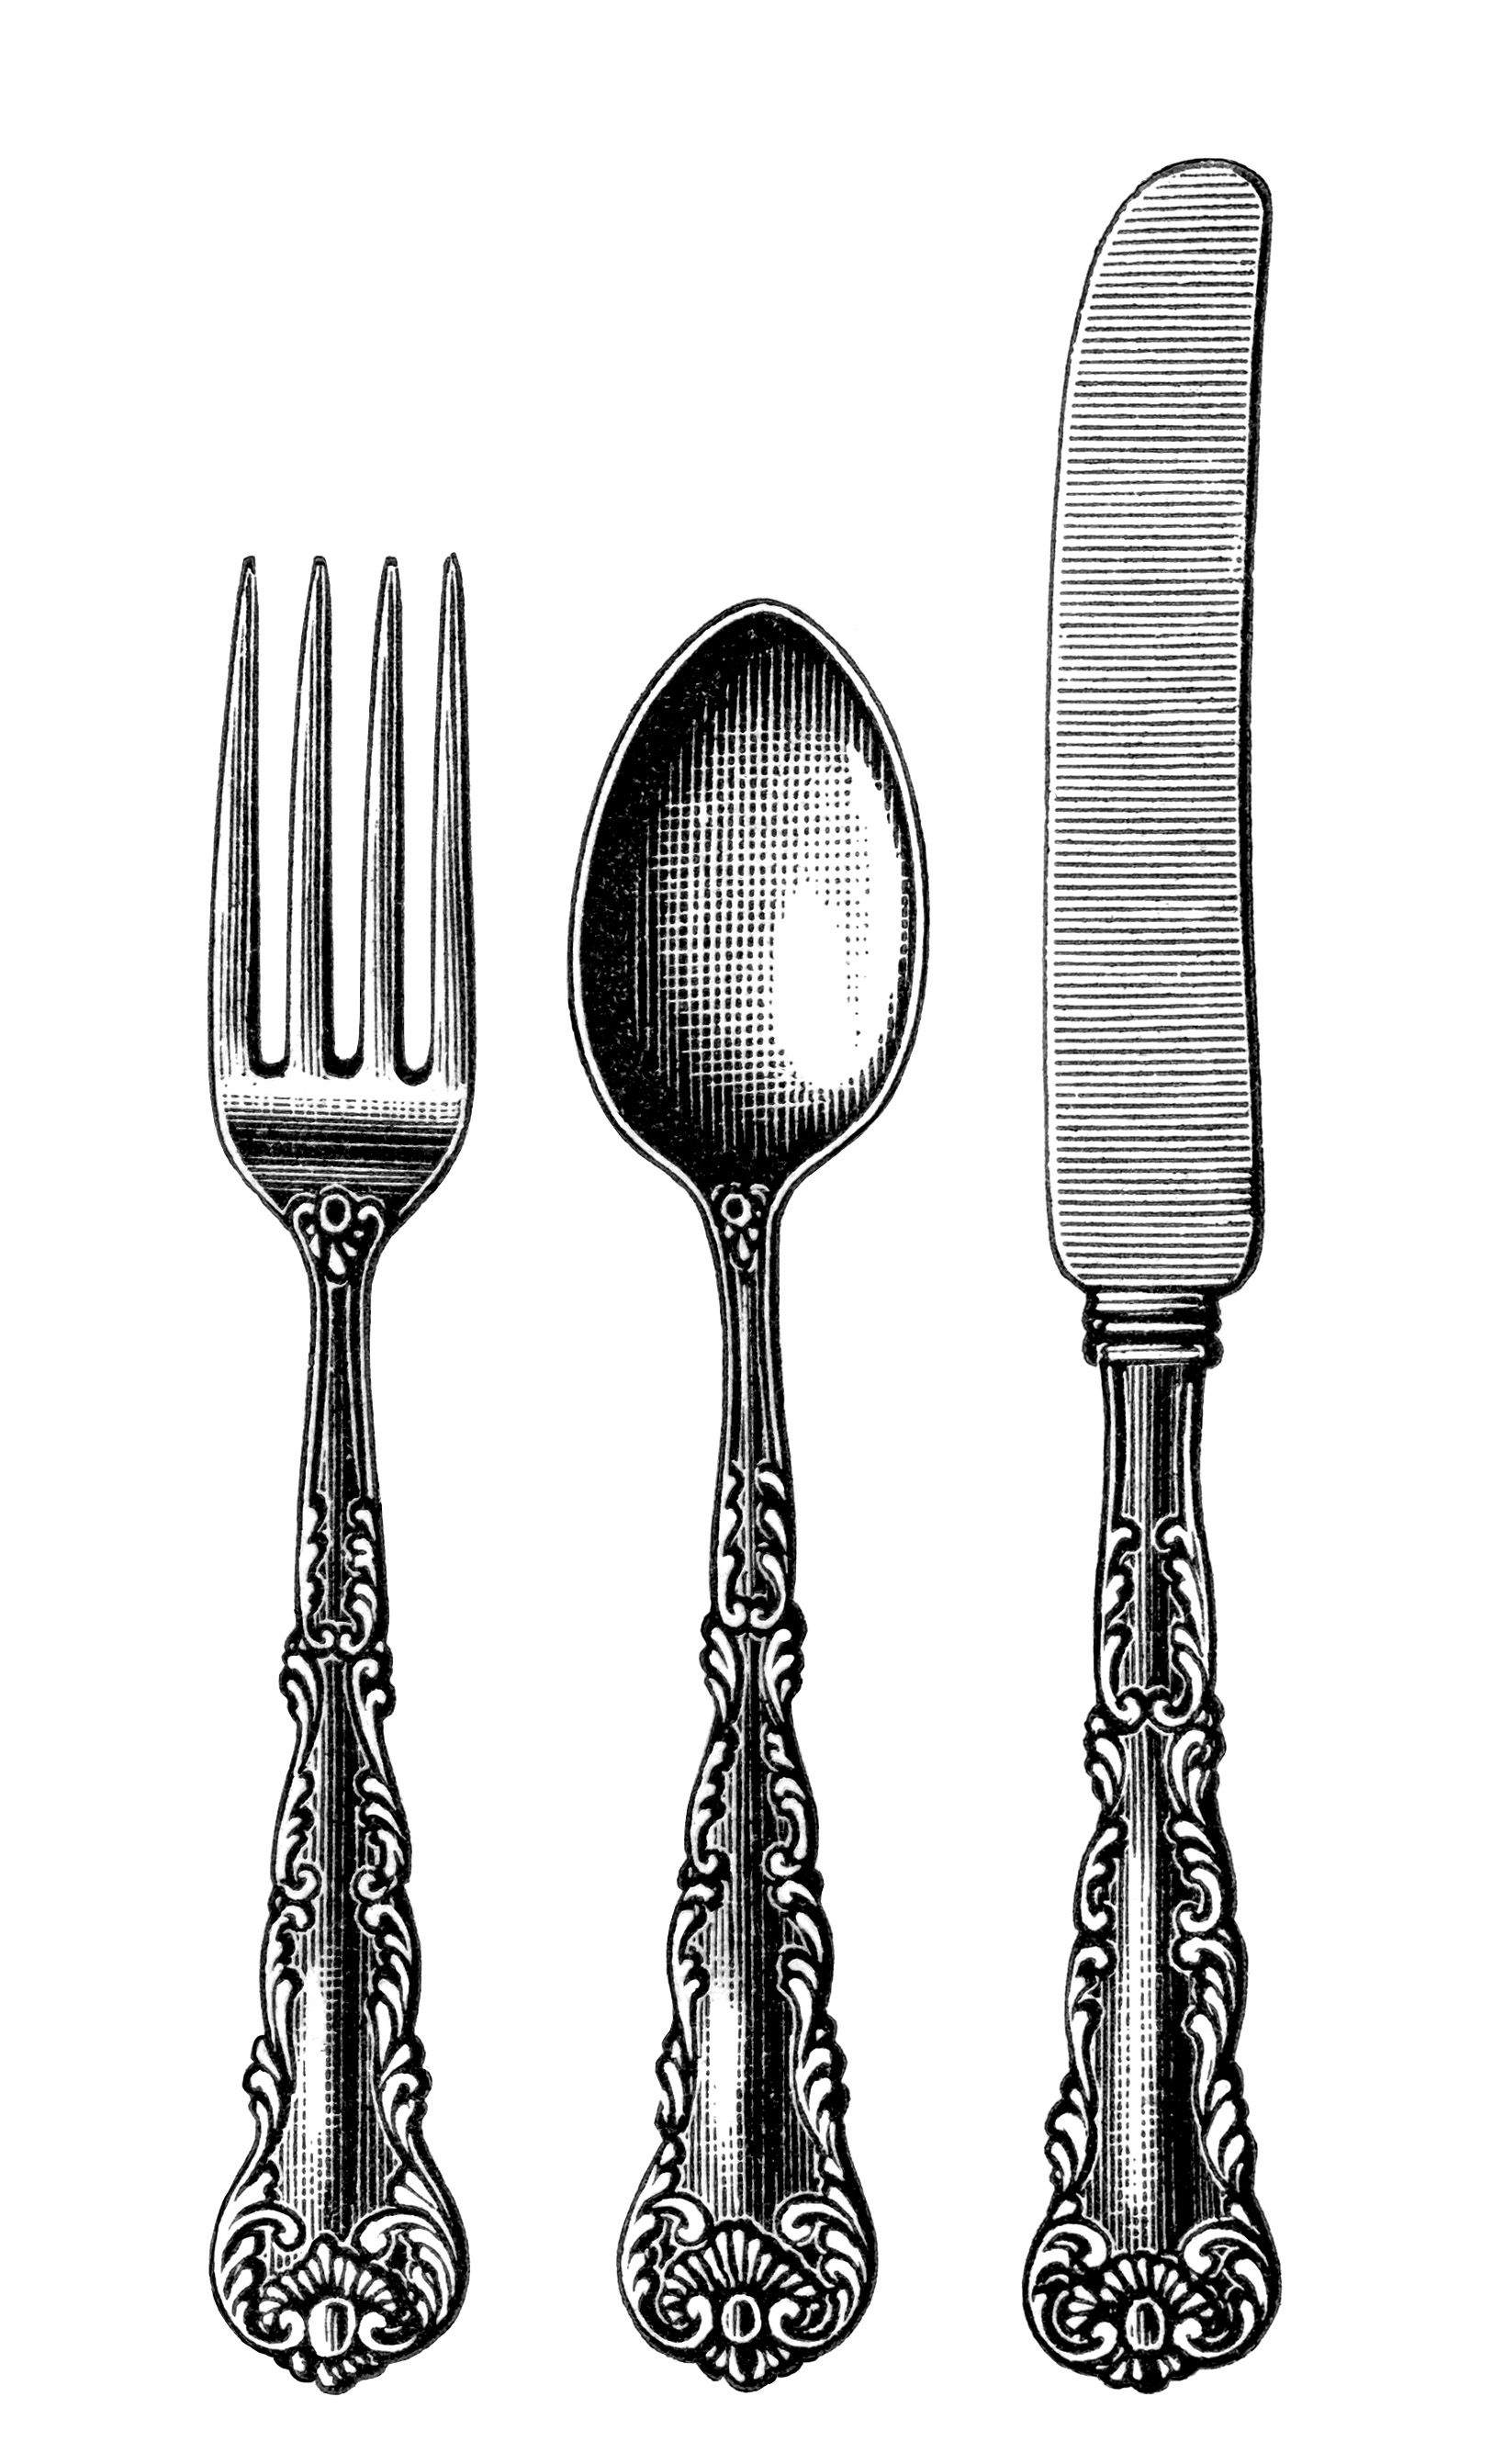 Free Knife And Fork Clipart 2 Vintage Fork Clipart for your creation.